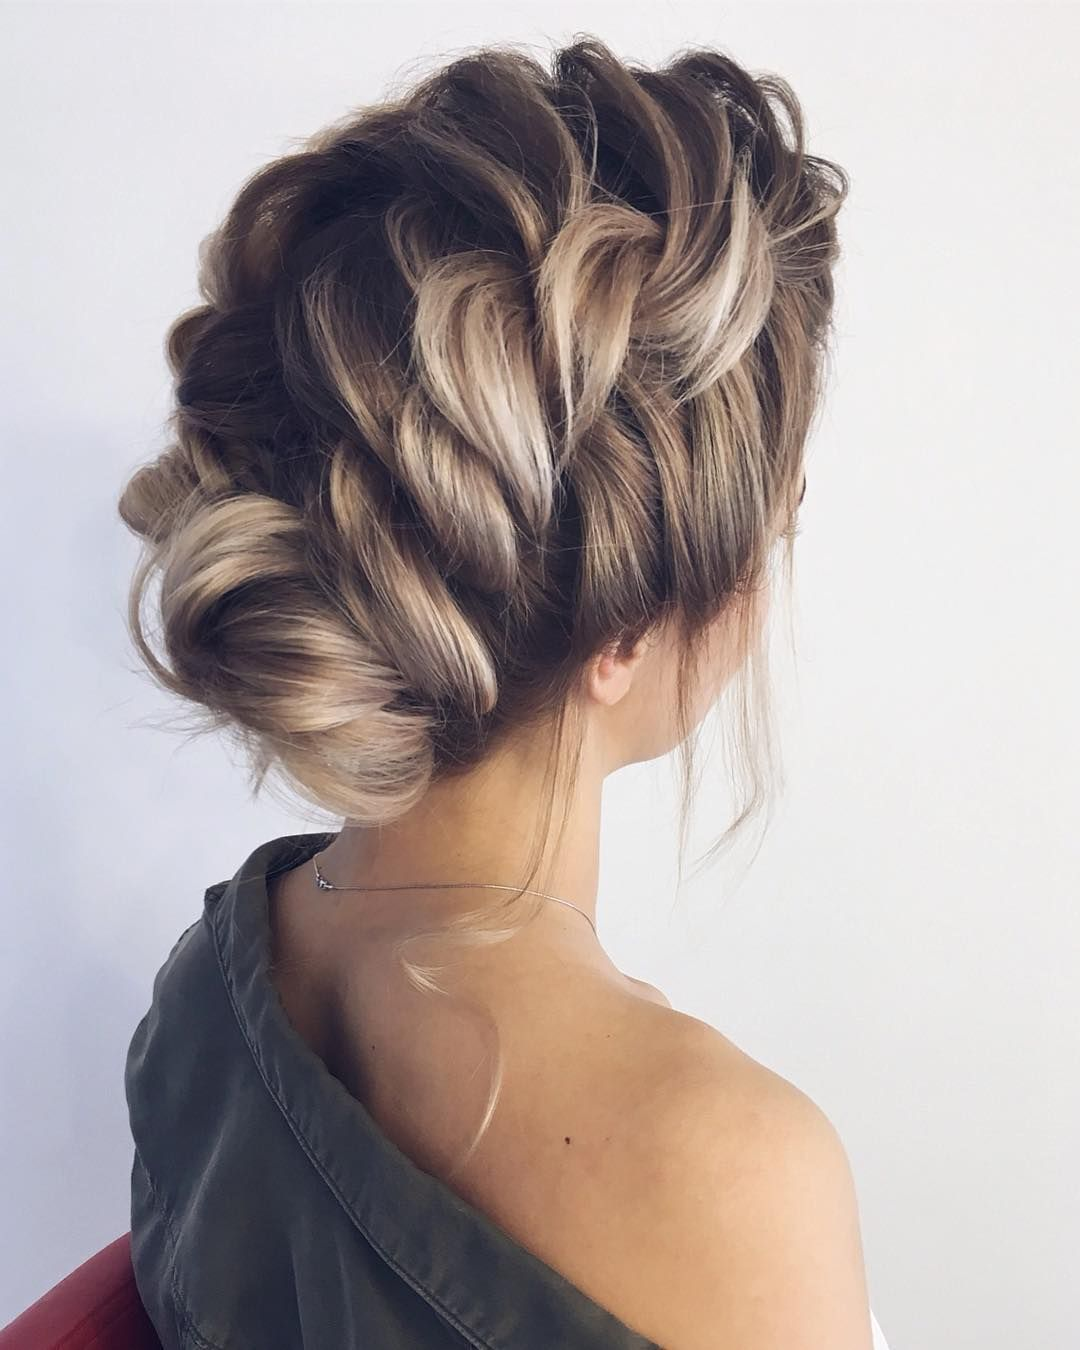 55 amazing updo hairstyle with the wow factor | hair(-styles